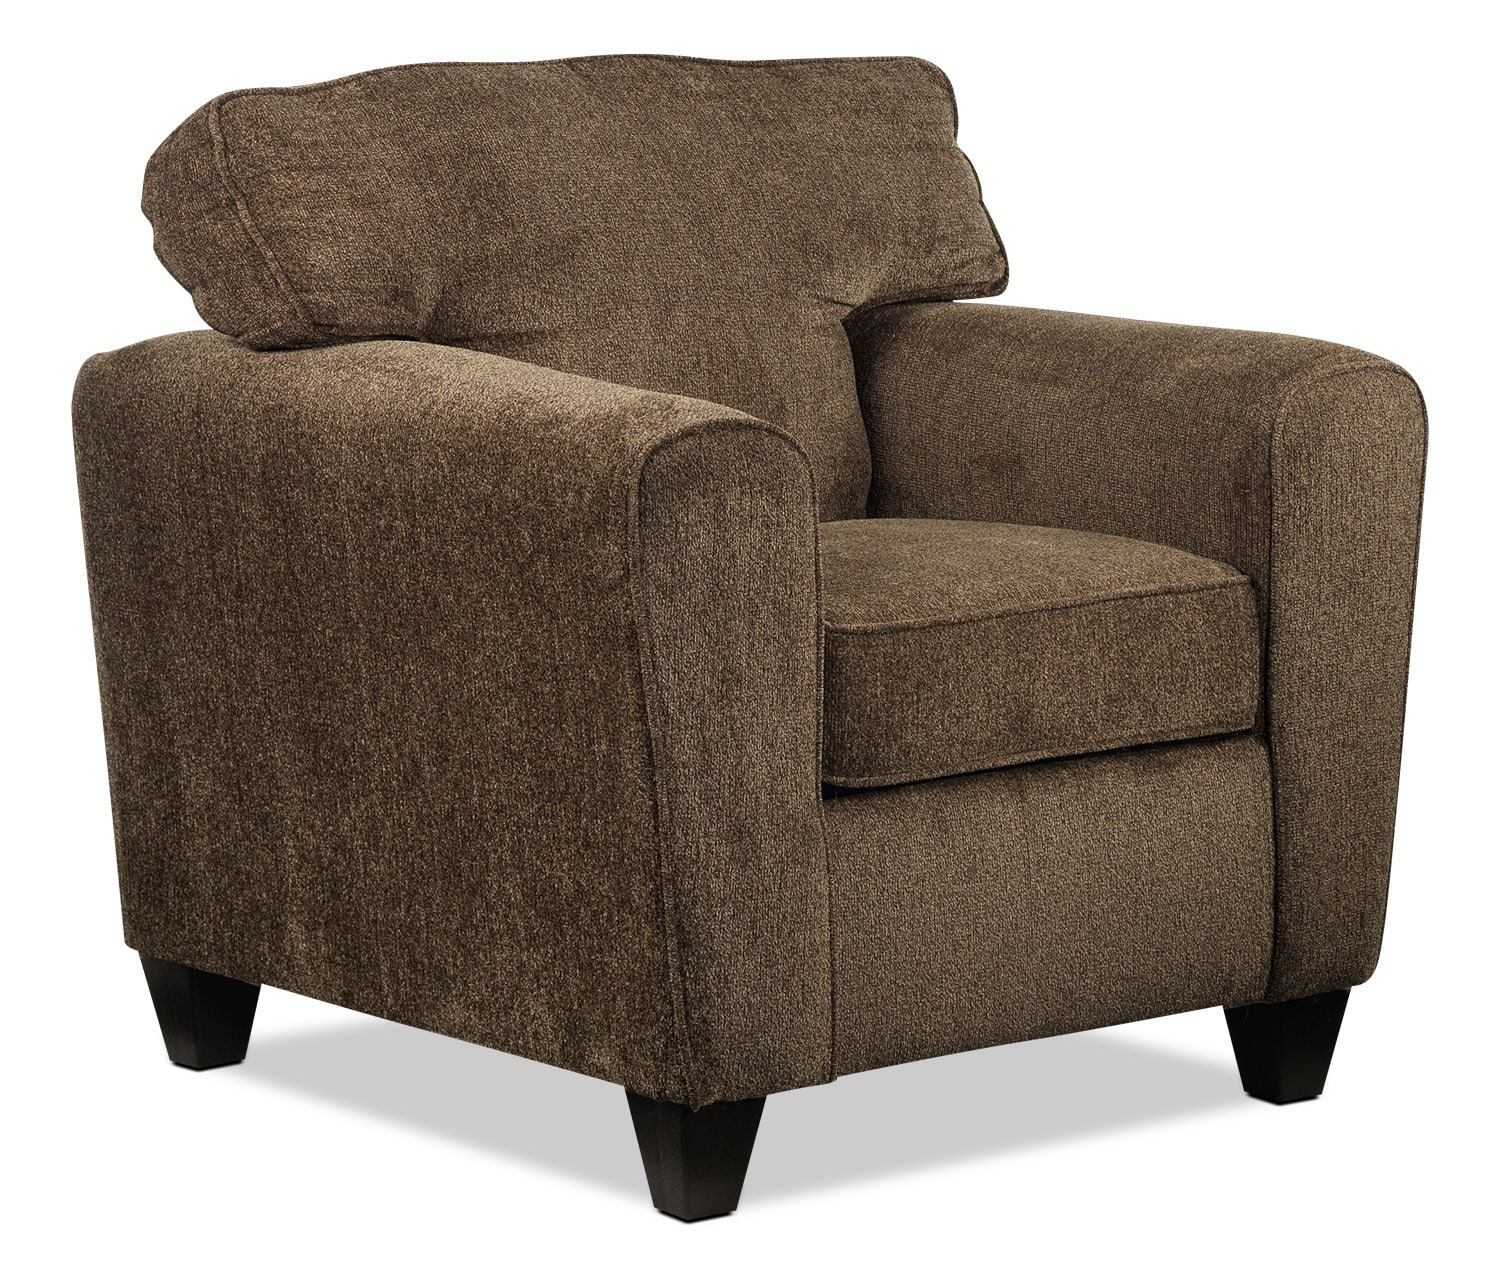 Living Room Furniture - Cornell Chair - Brown